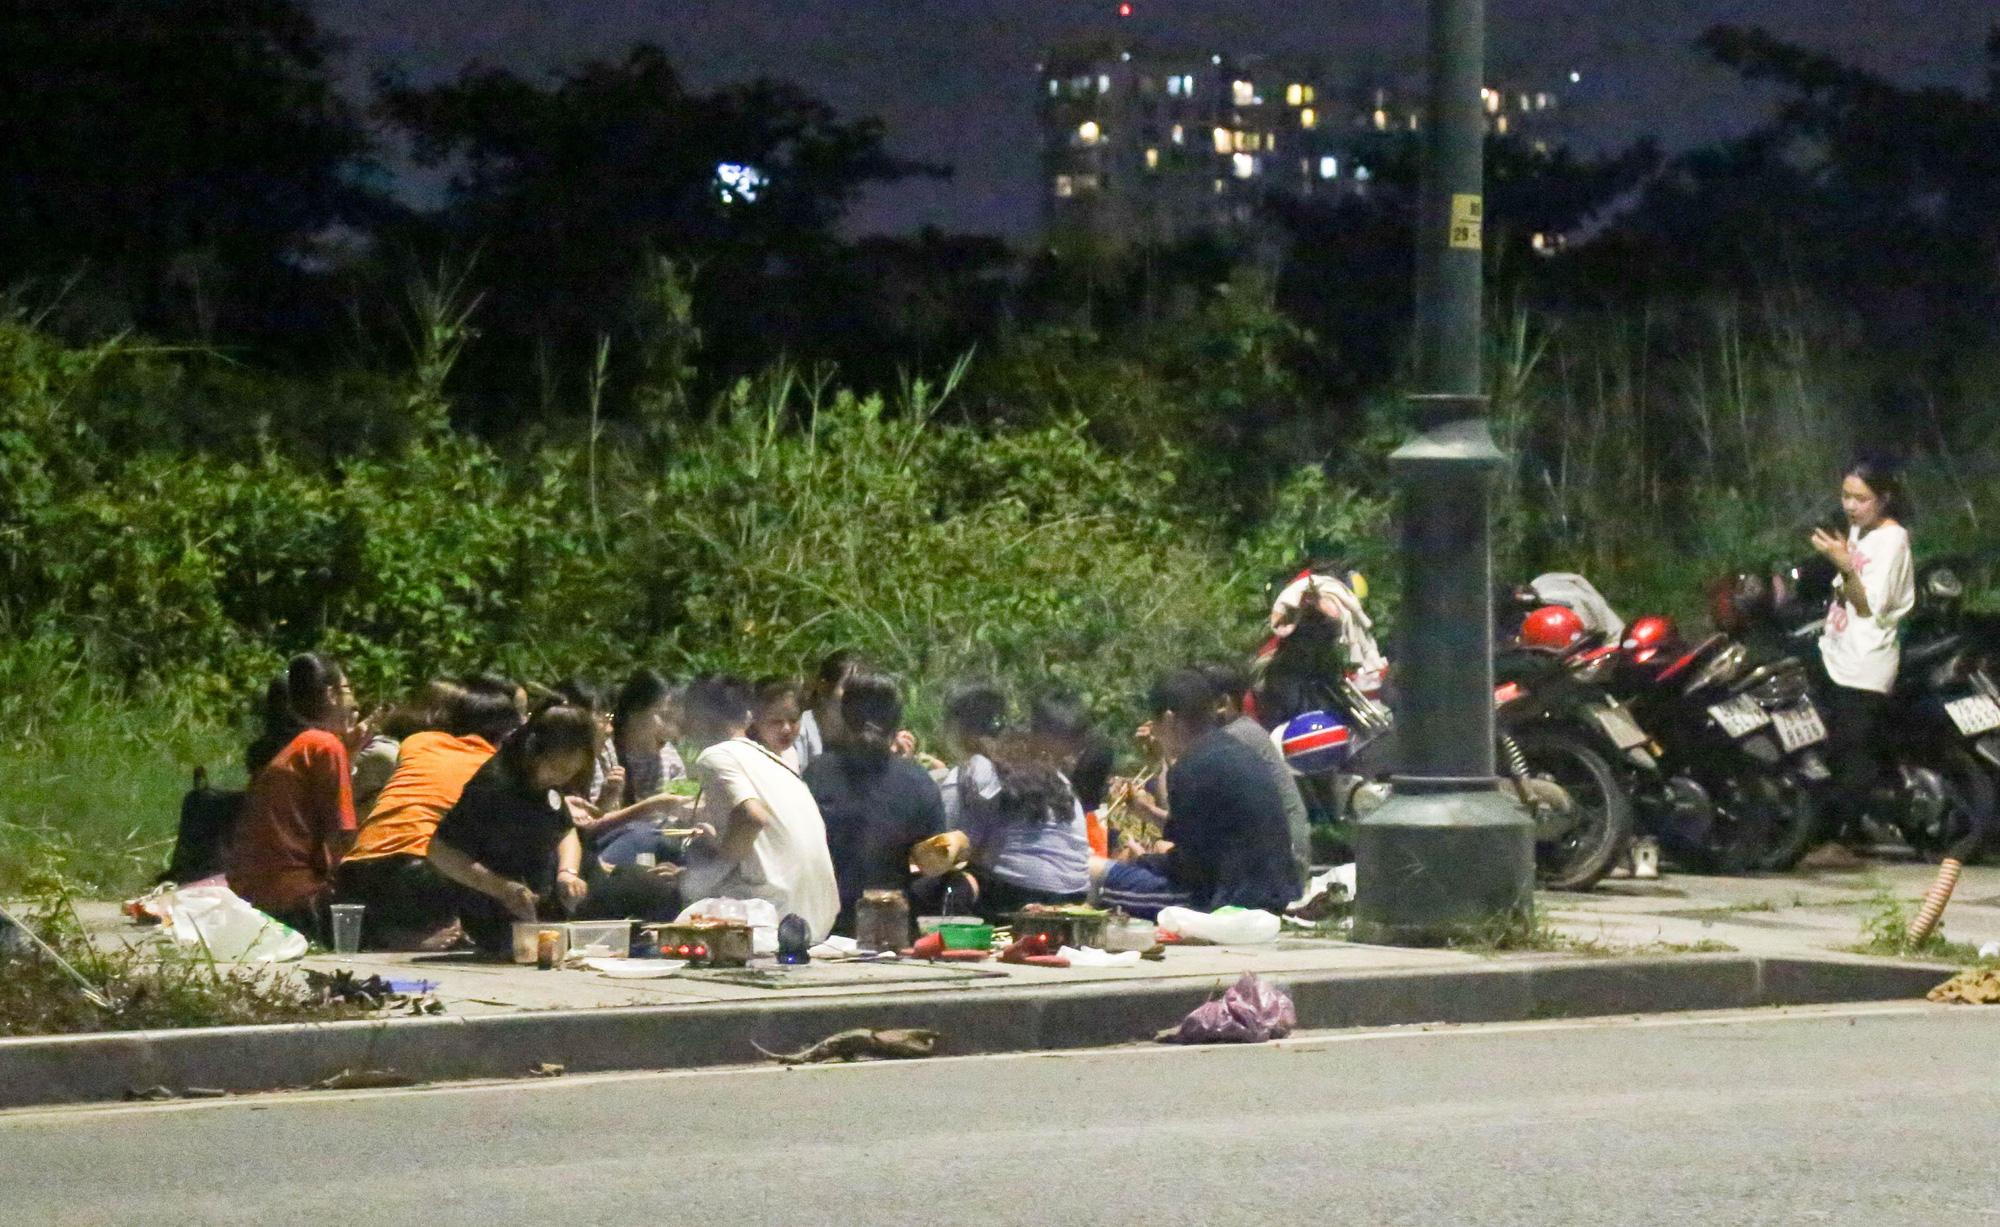 Roadside BBQ parties a headache in Ho Chi Minh City's new urban area